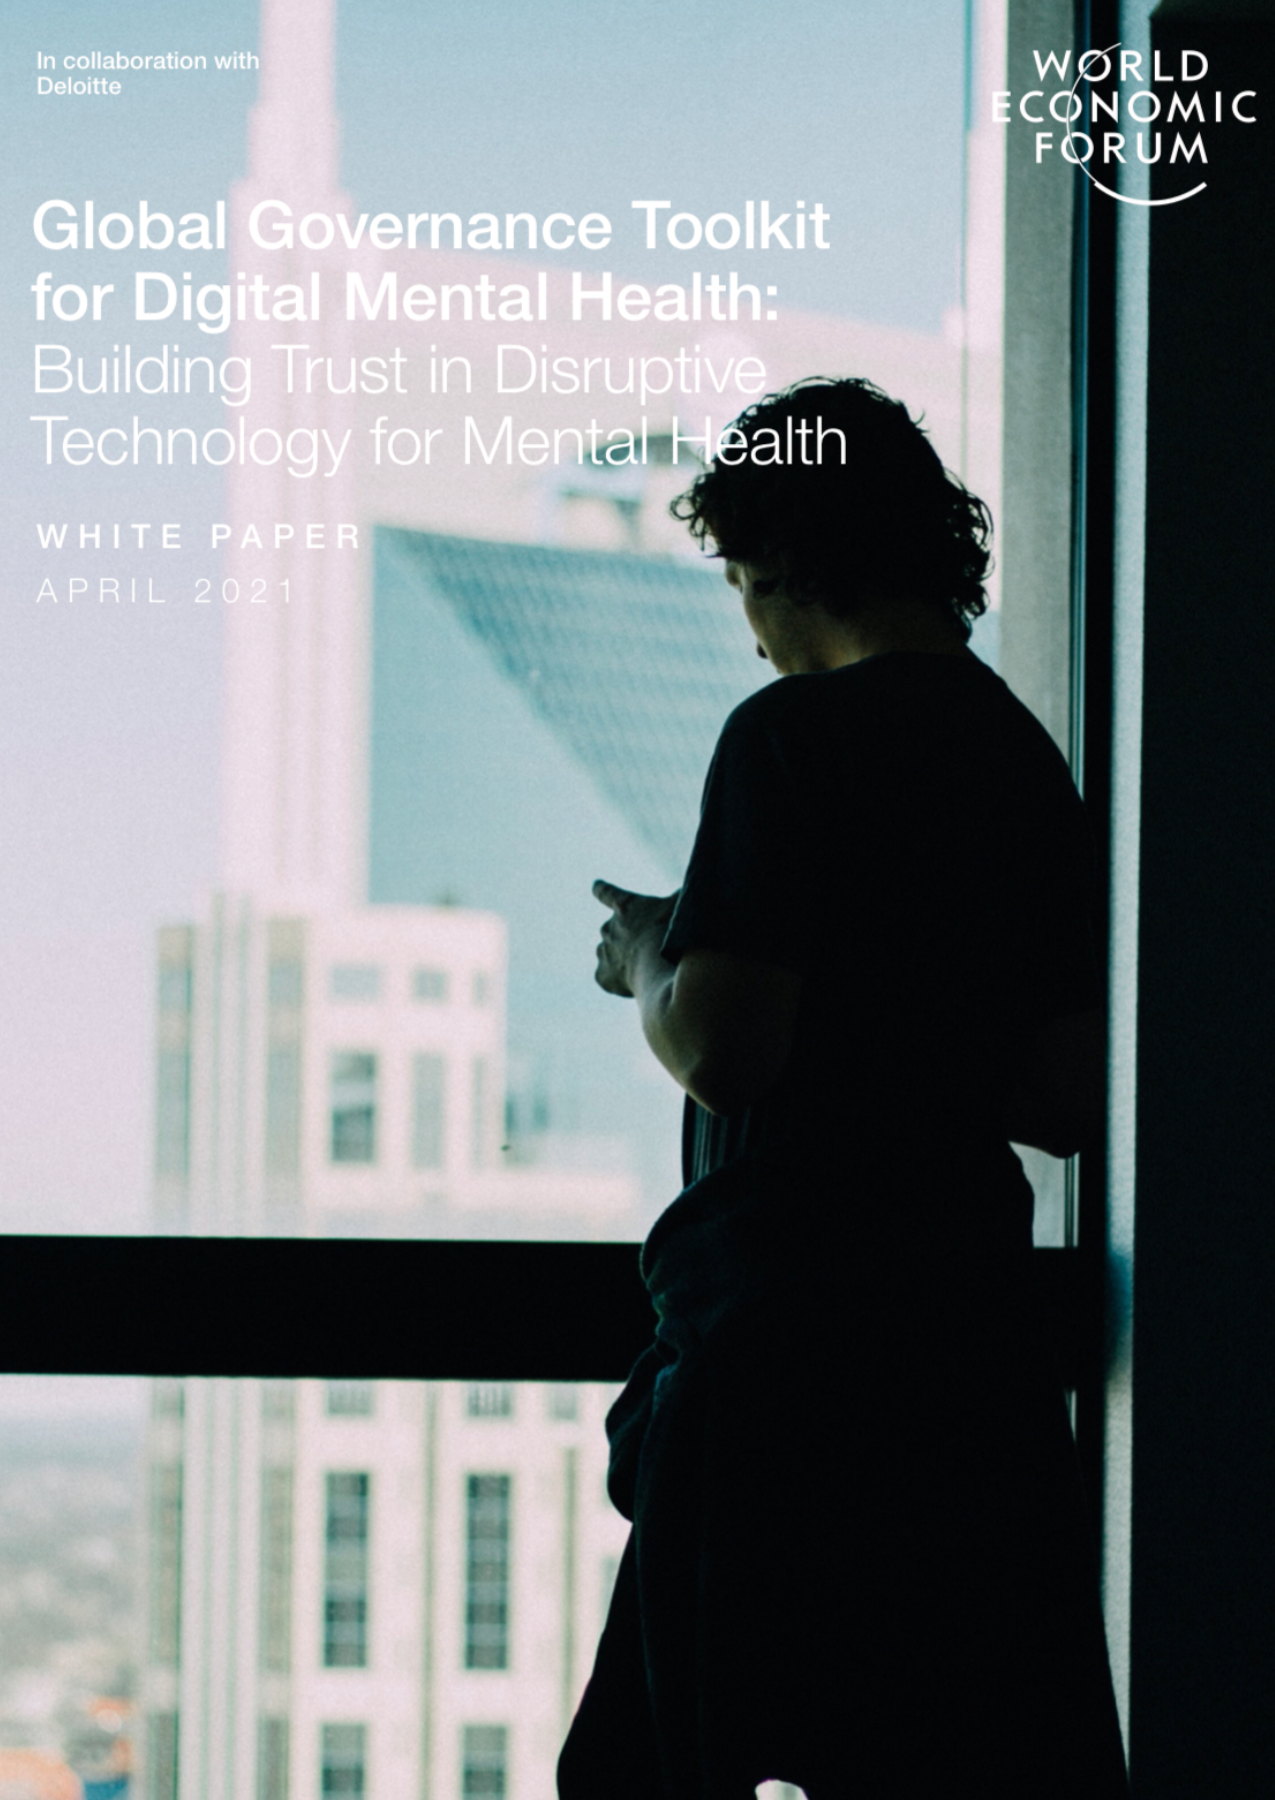 Global Governance Toolkit for Digital Mental Health: Building Trust in Disruptive Technology for Mental Health